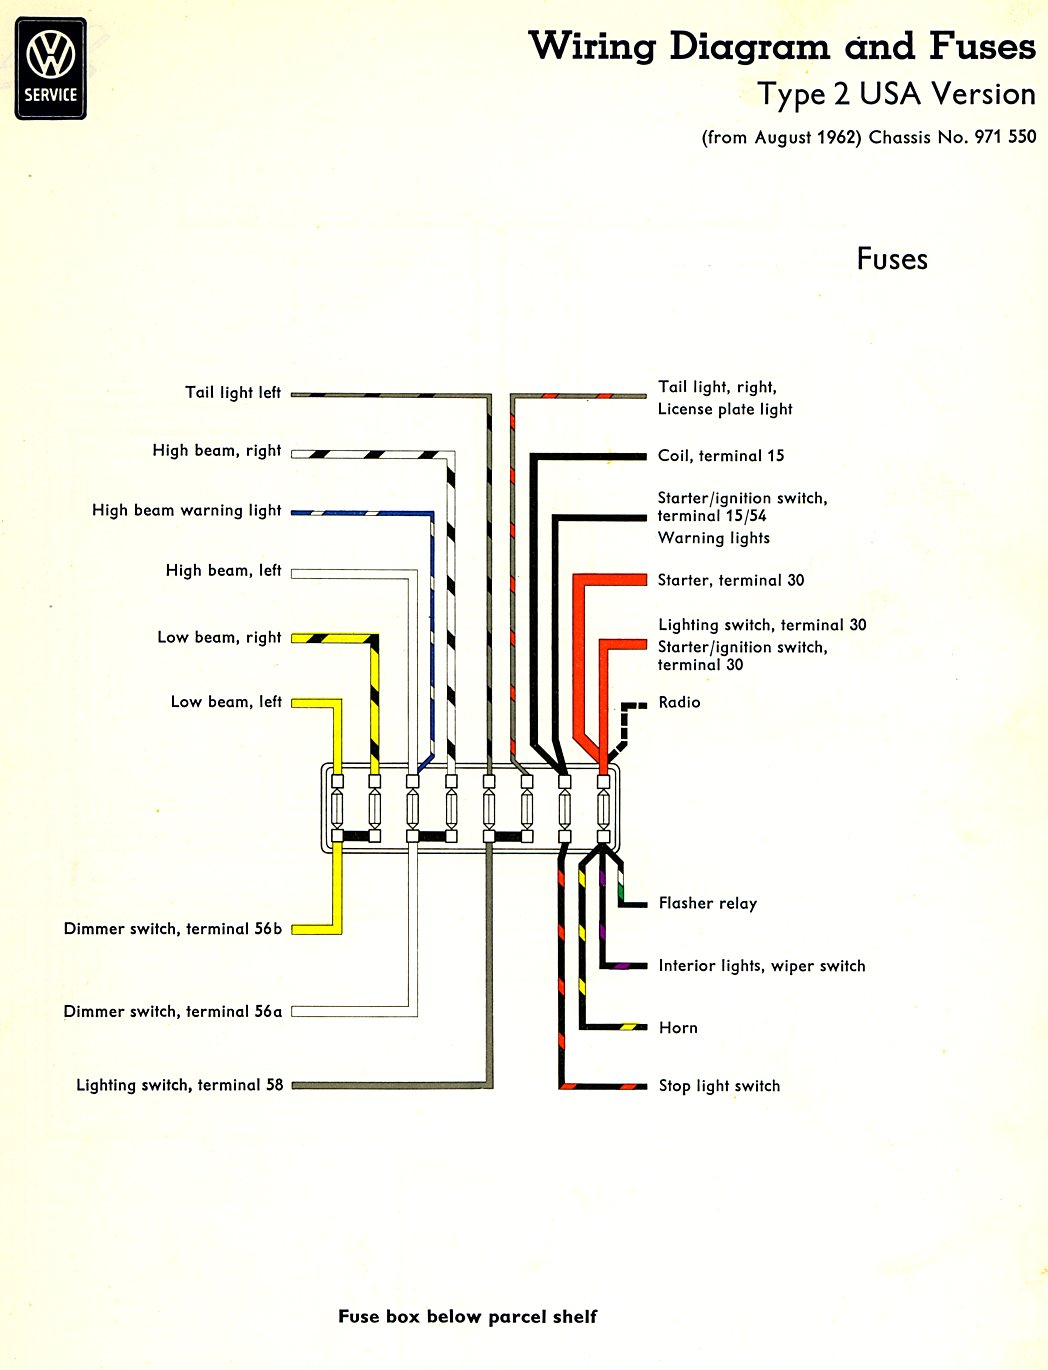 1974 vw bus alternator wiring wiring diagram